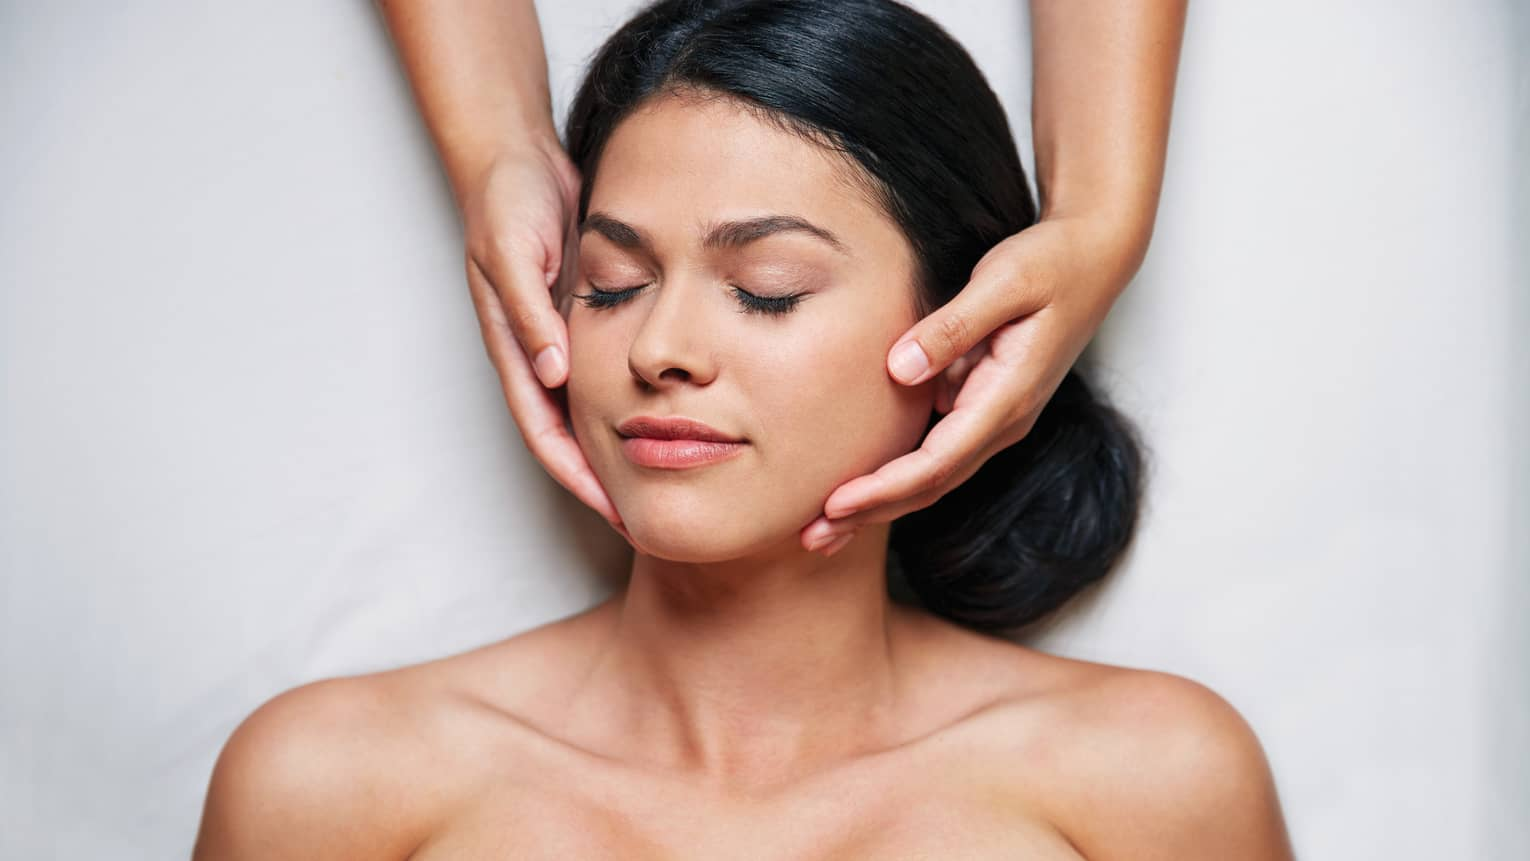 Woman with eyes closed as hands massage her face